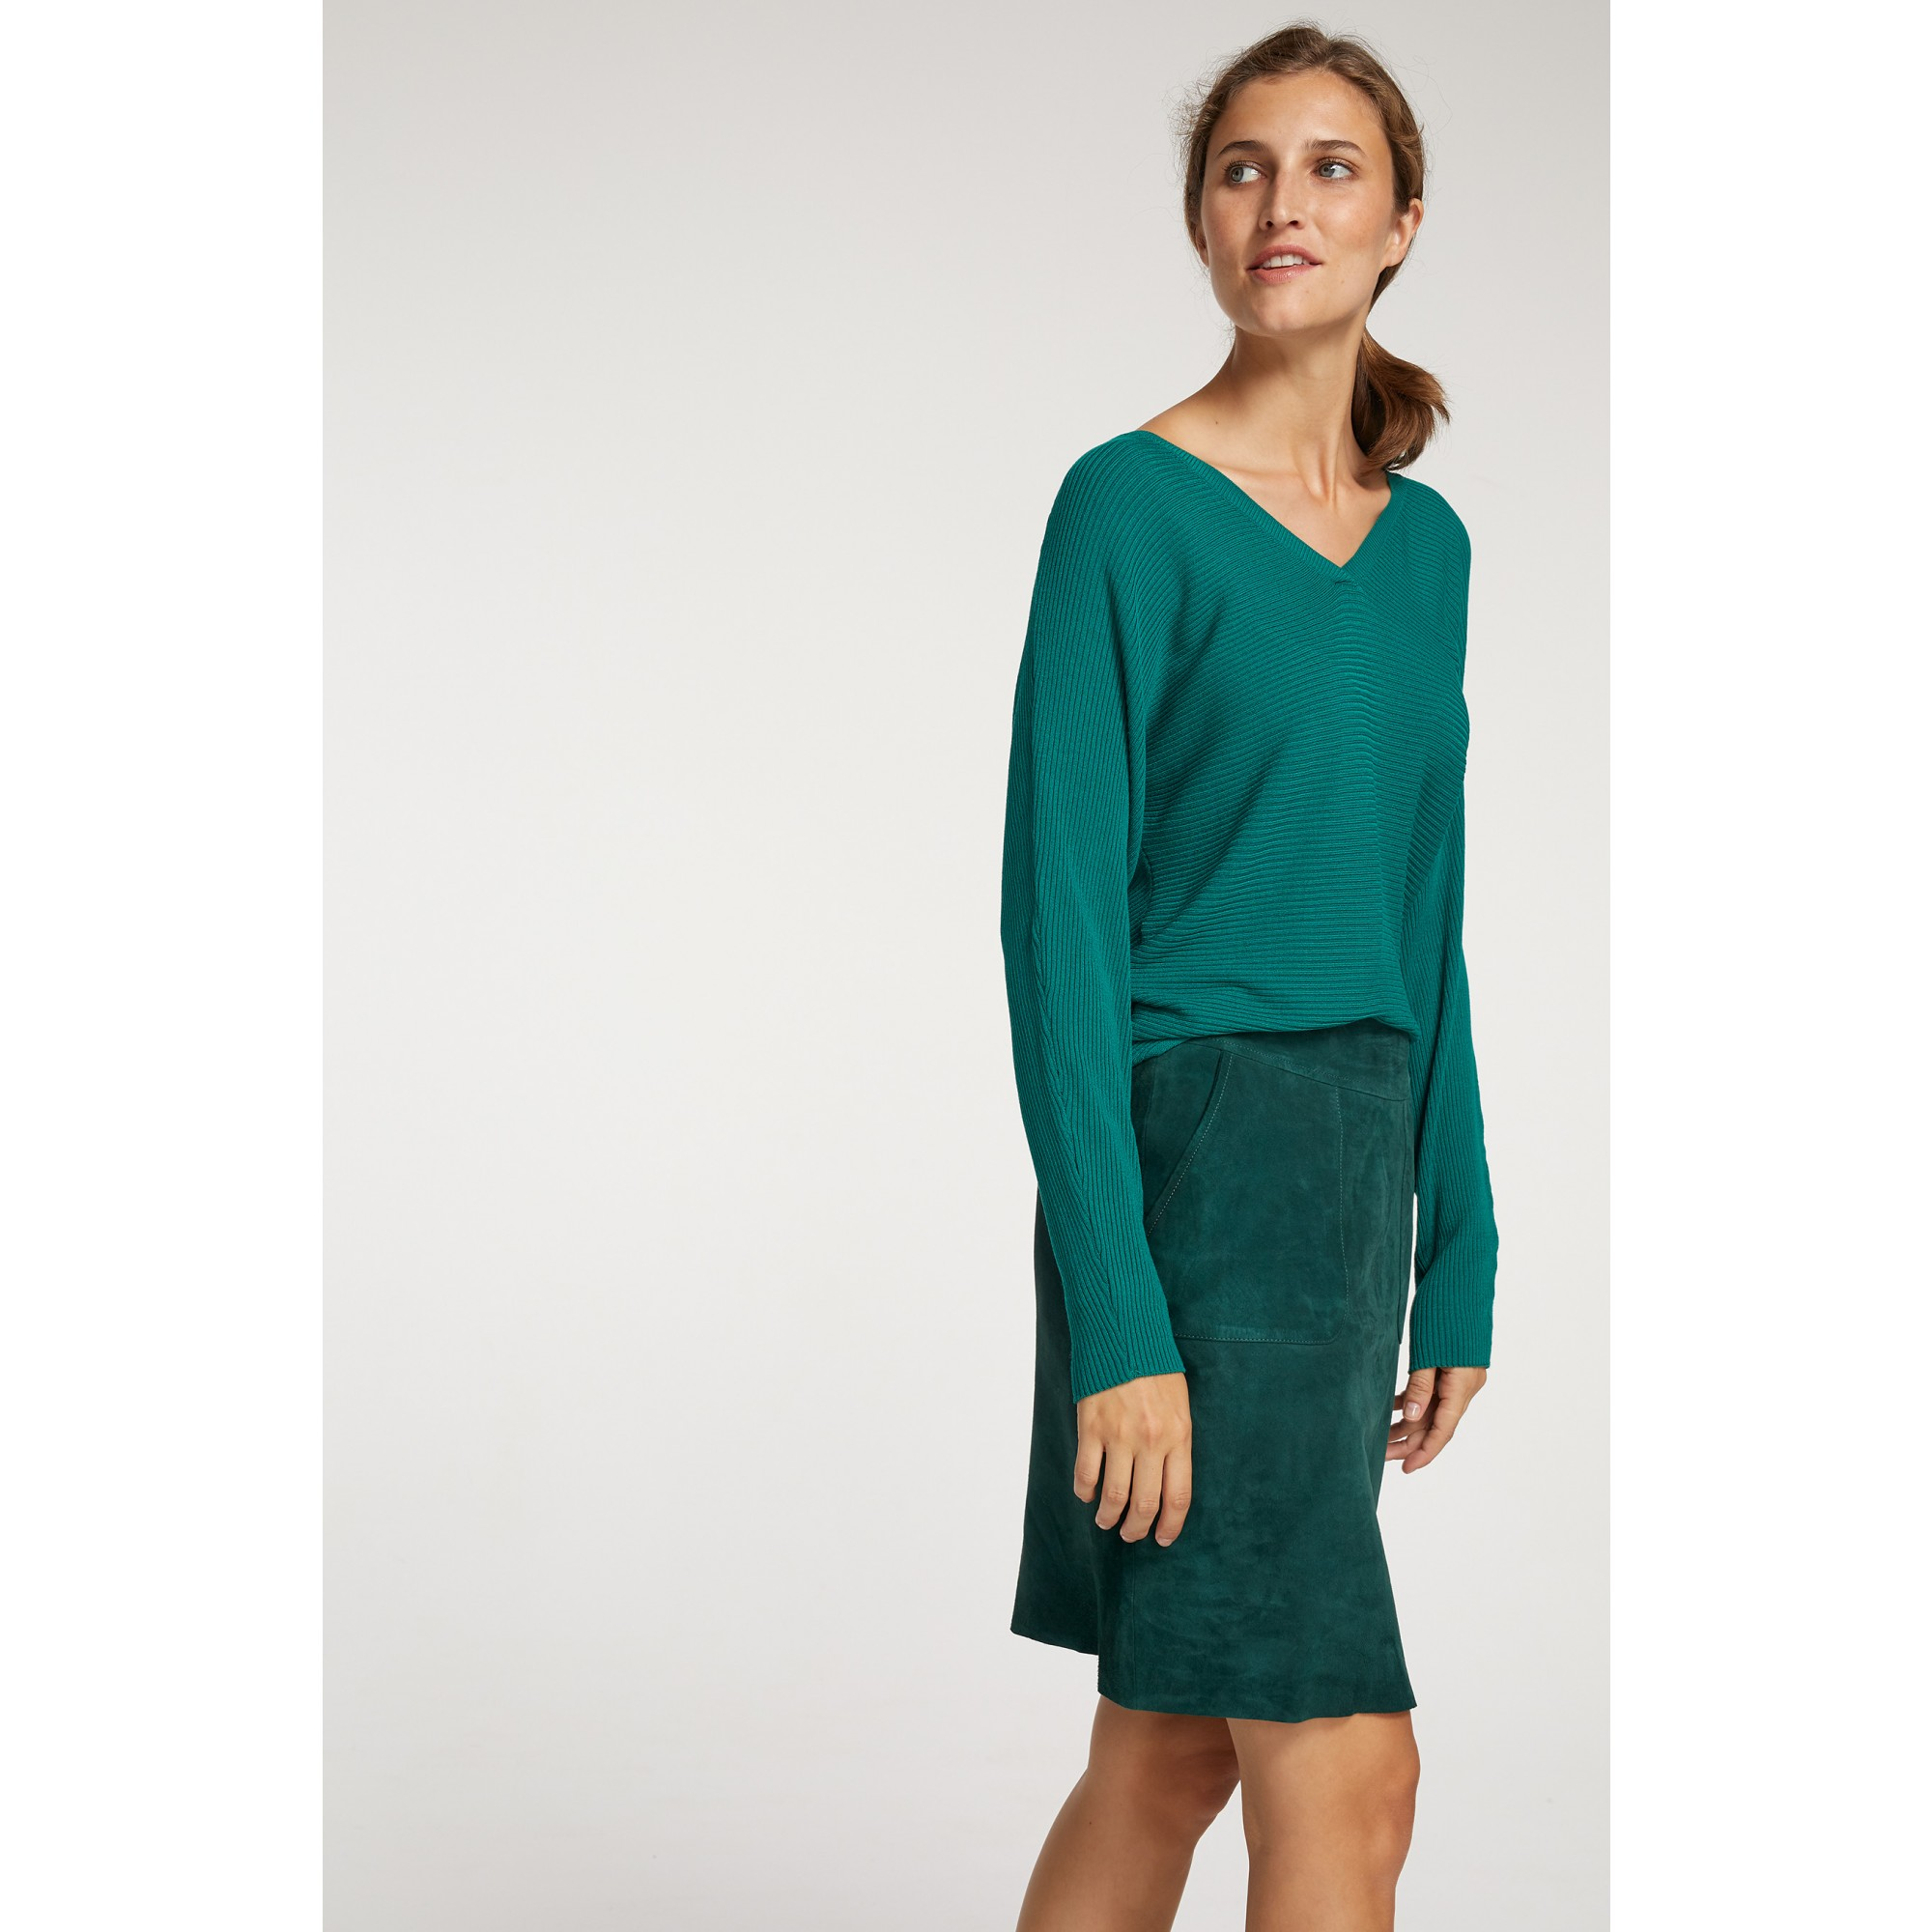 V-Neck Pulli, emerald green 91091002-0655